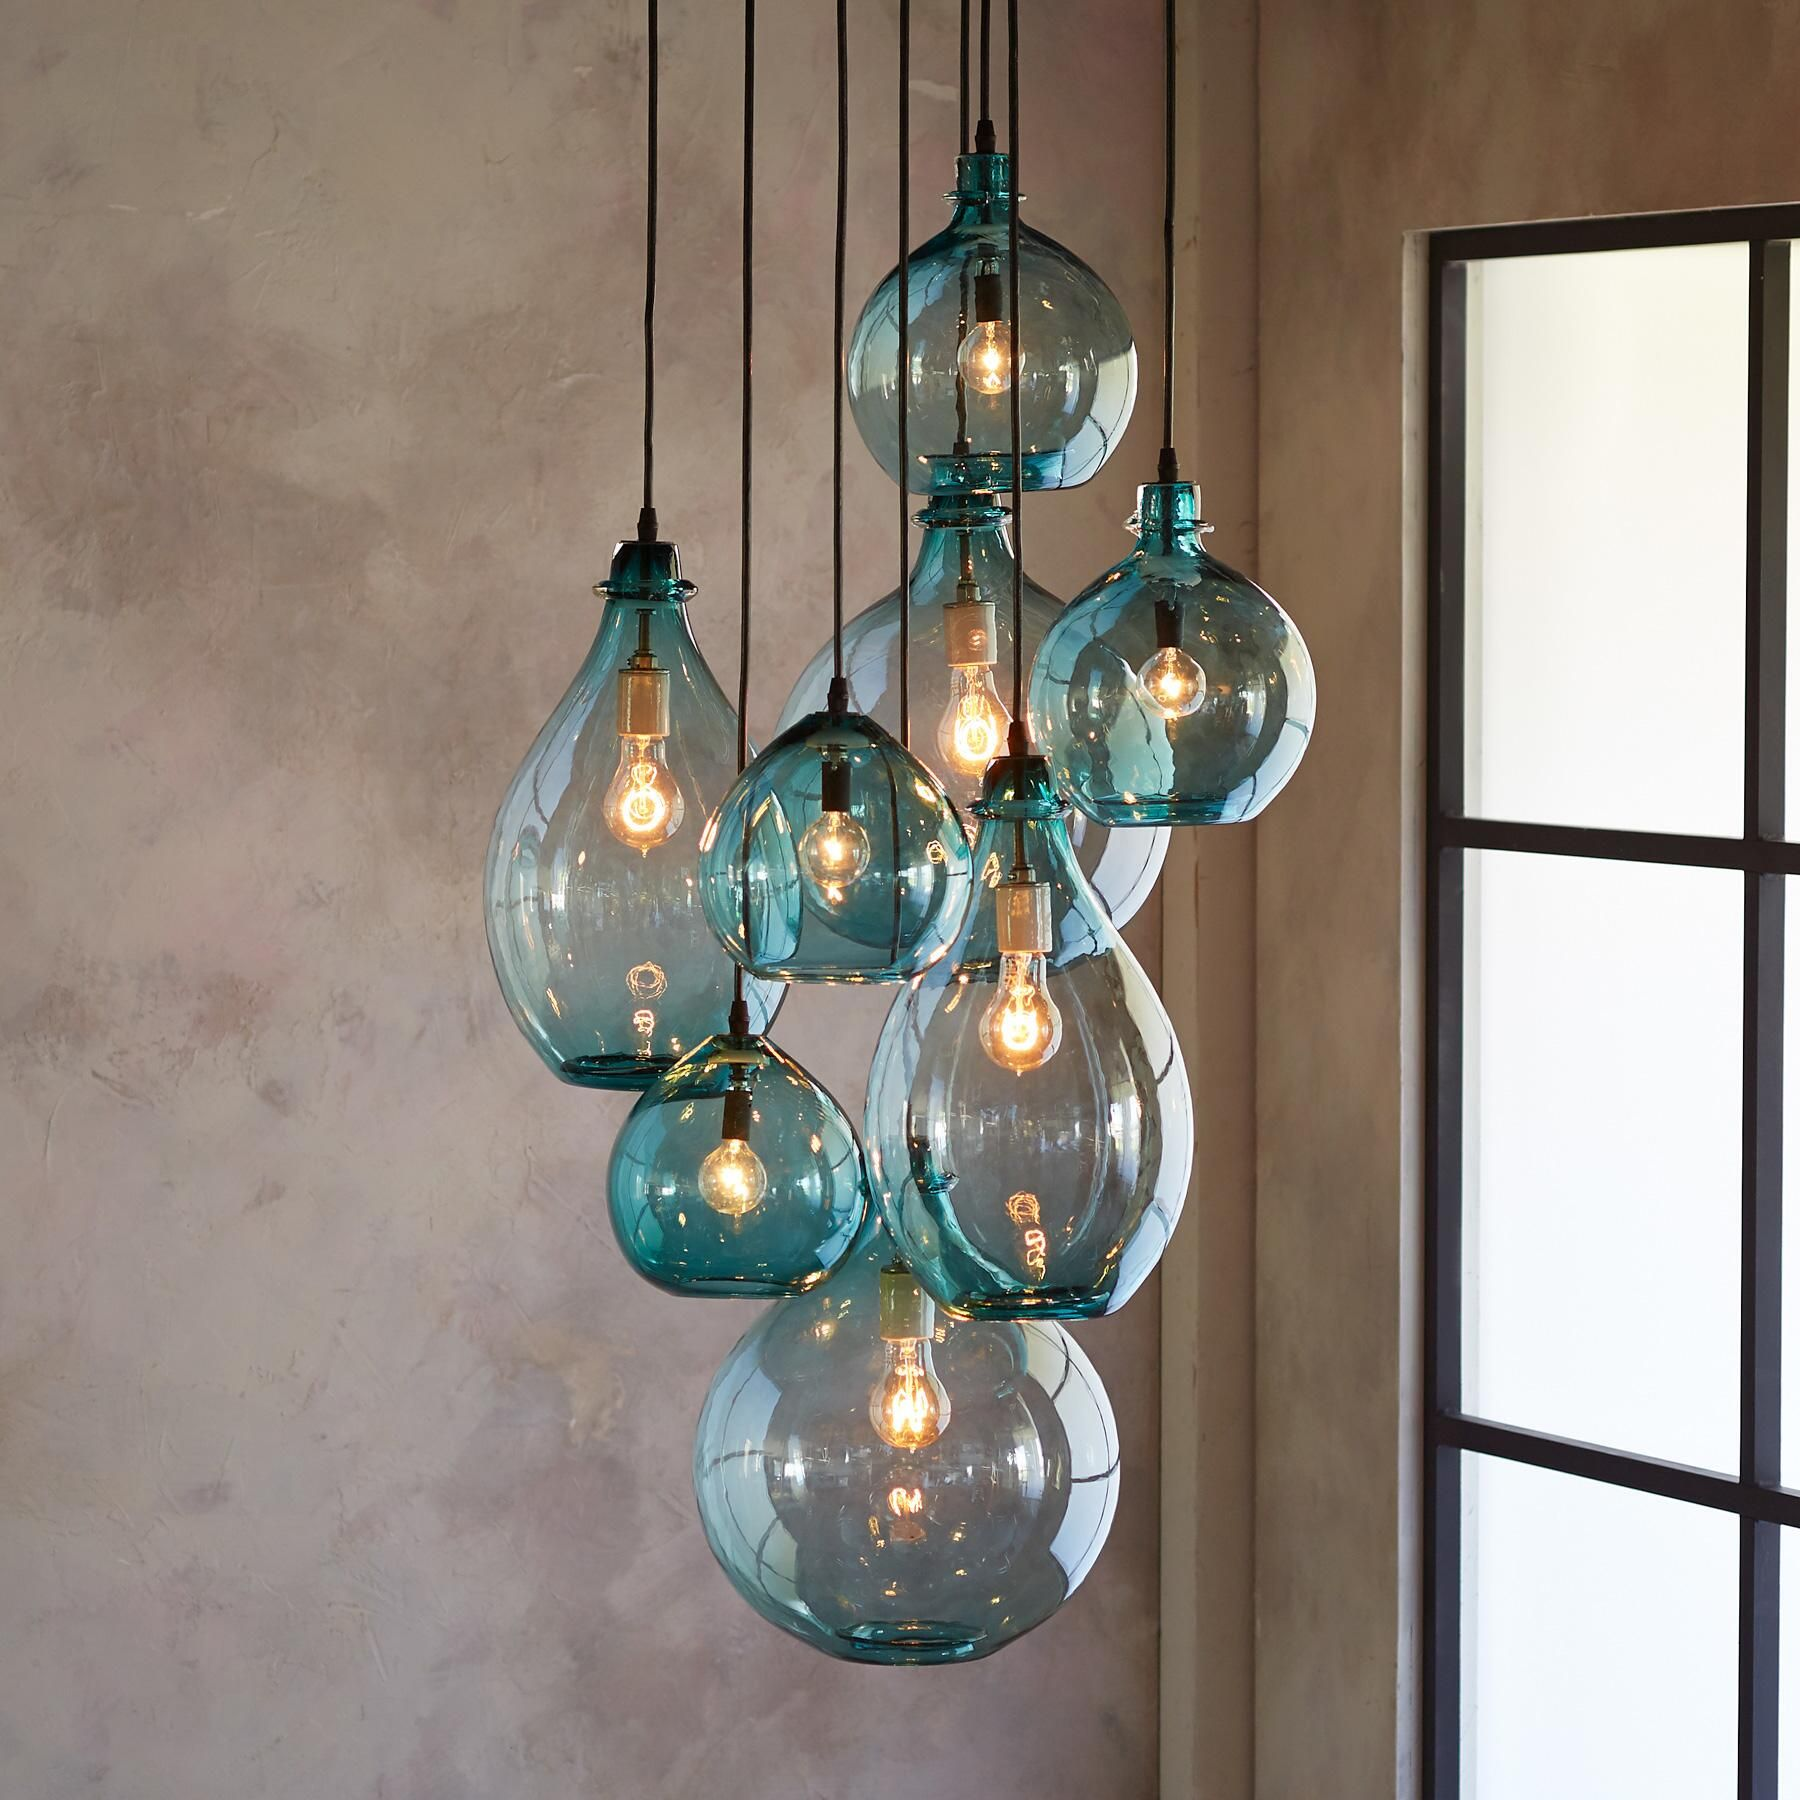 Salon Gl Pendant Canopy Limpid Turquoise Drops Of Hand N Envisioned By A Los Angeles Cisco Pinedo Cer Together Beneath